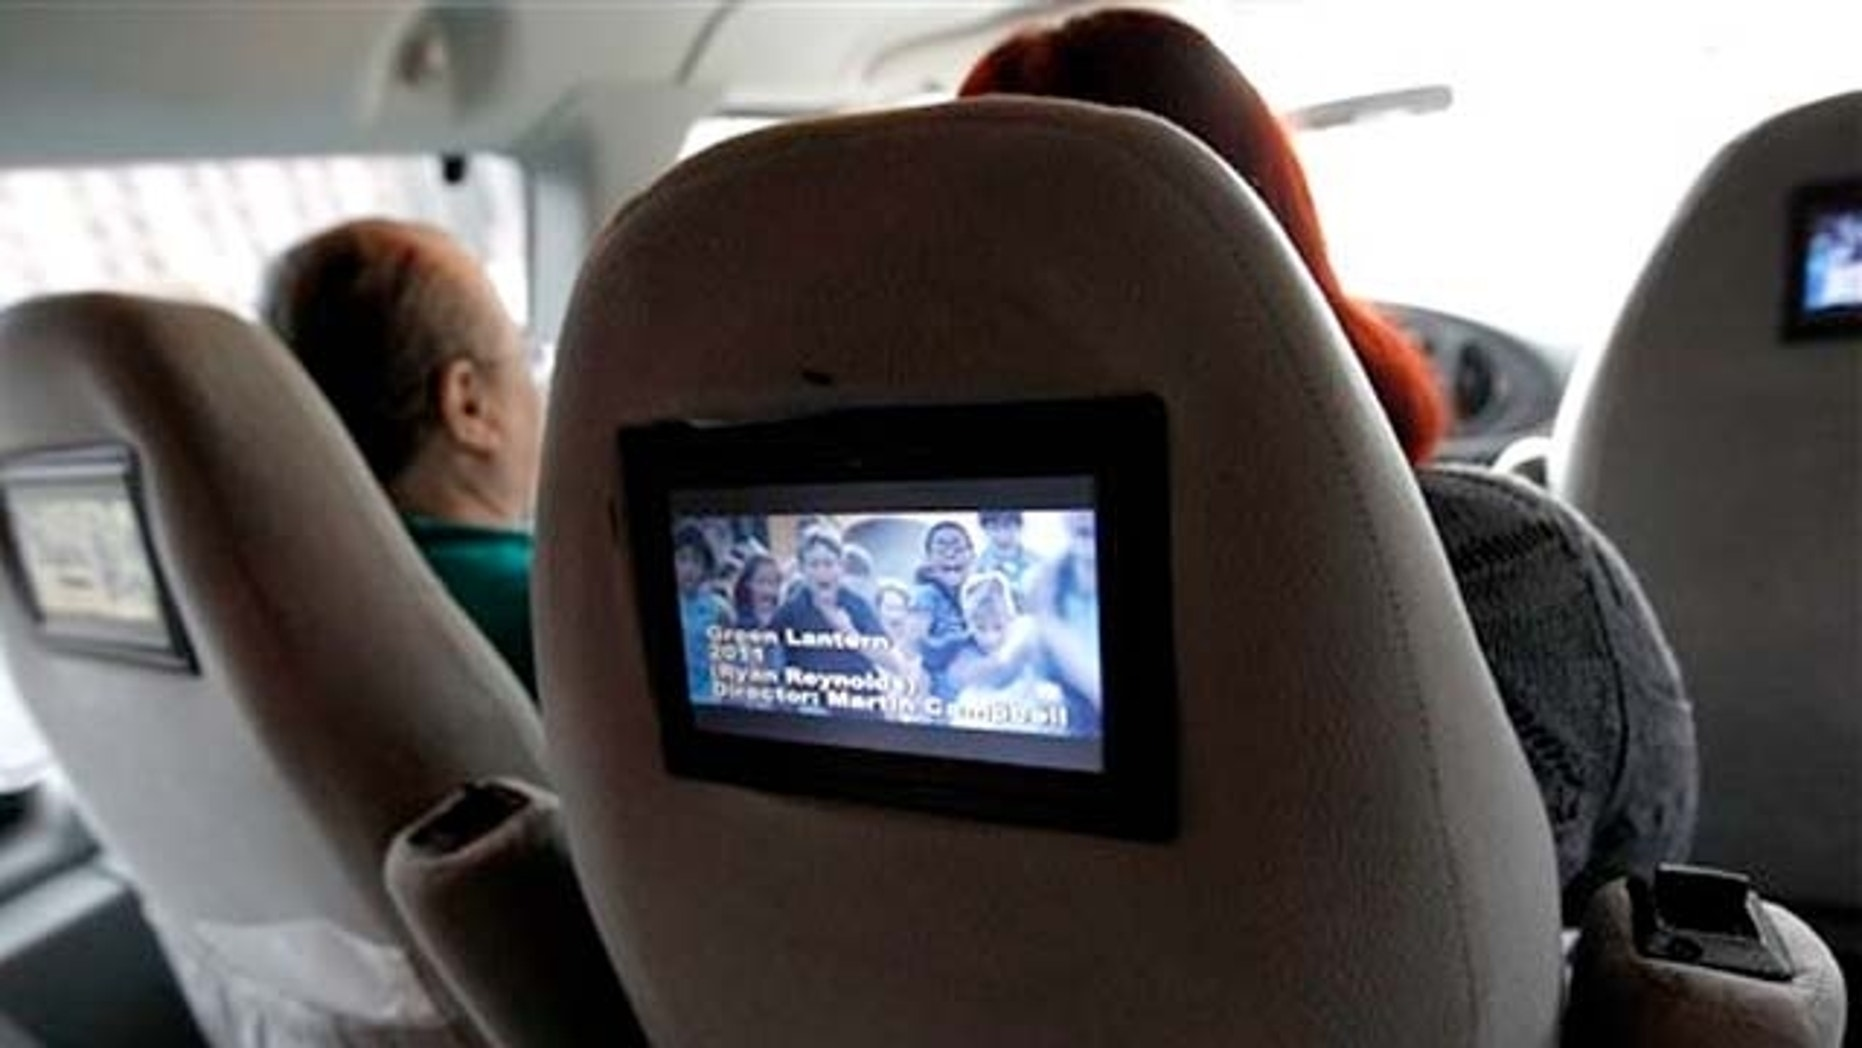 Dec 15, 2011:A clip from a movie is shown as part of New Orleans Movie Tours, which launched this summer.  It takes passengers aboard a van equipped with movie screens and a sound system to locations where famous movie scenes were filmed. The tour also includes peeks at the New Orleans homes of Brad Pitt, Sandra Bullock and John Goodman.